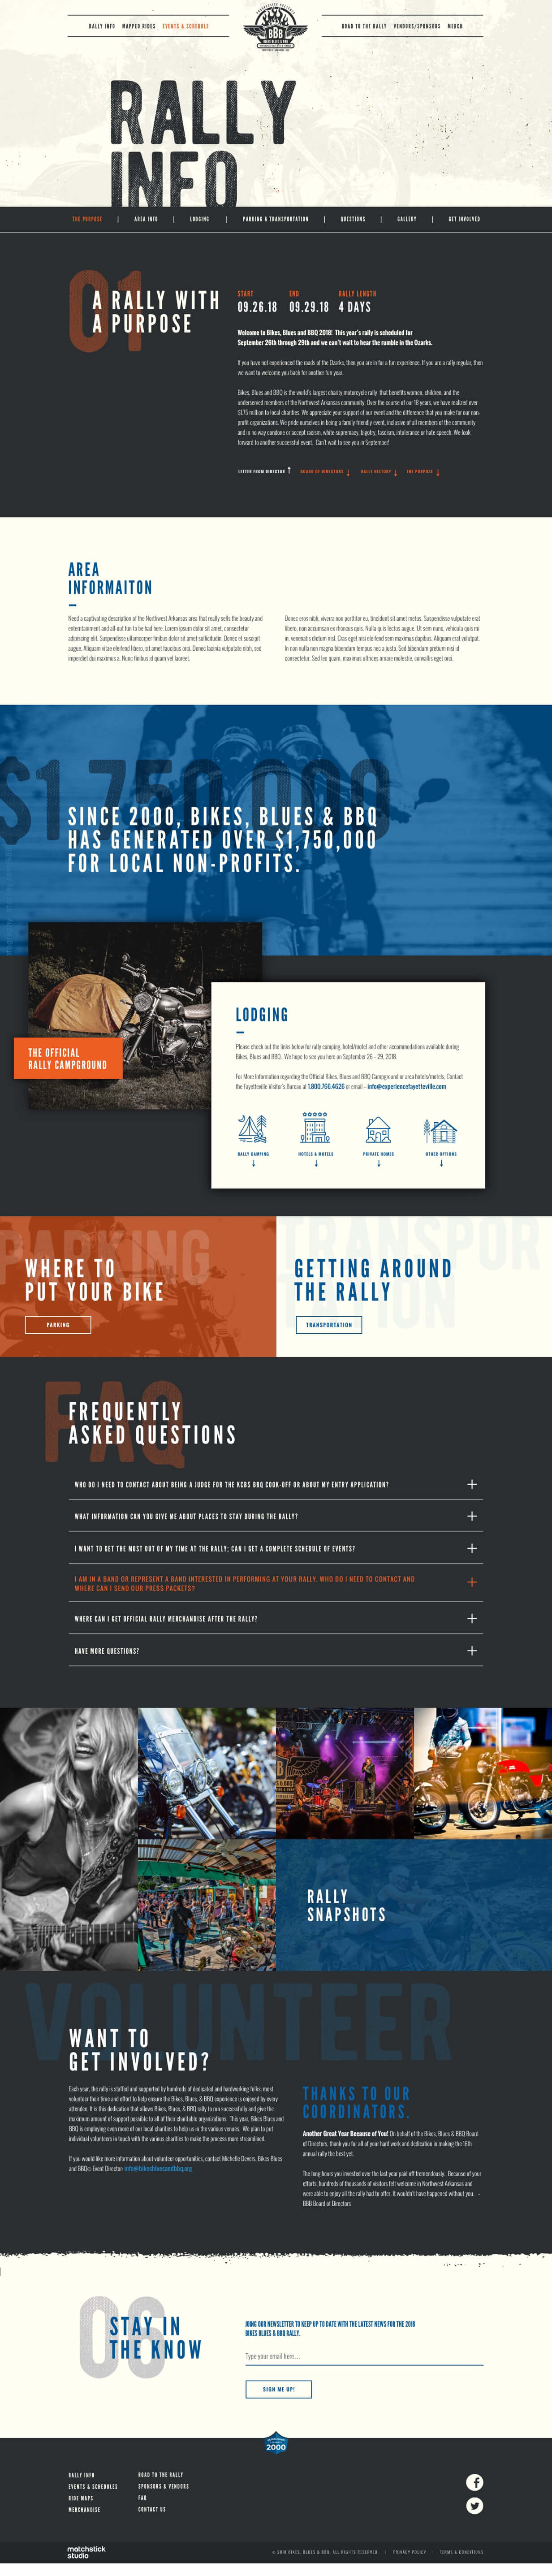 Bikes Blues and BBQ Website Layout